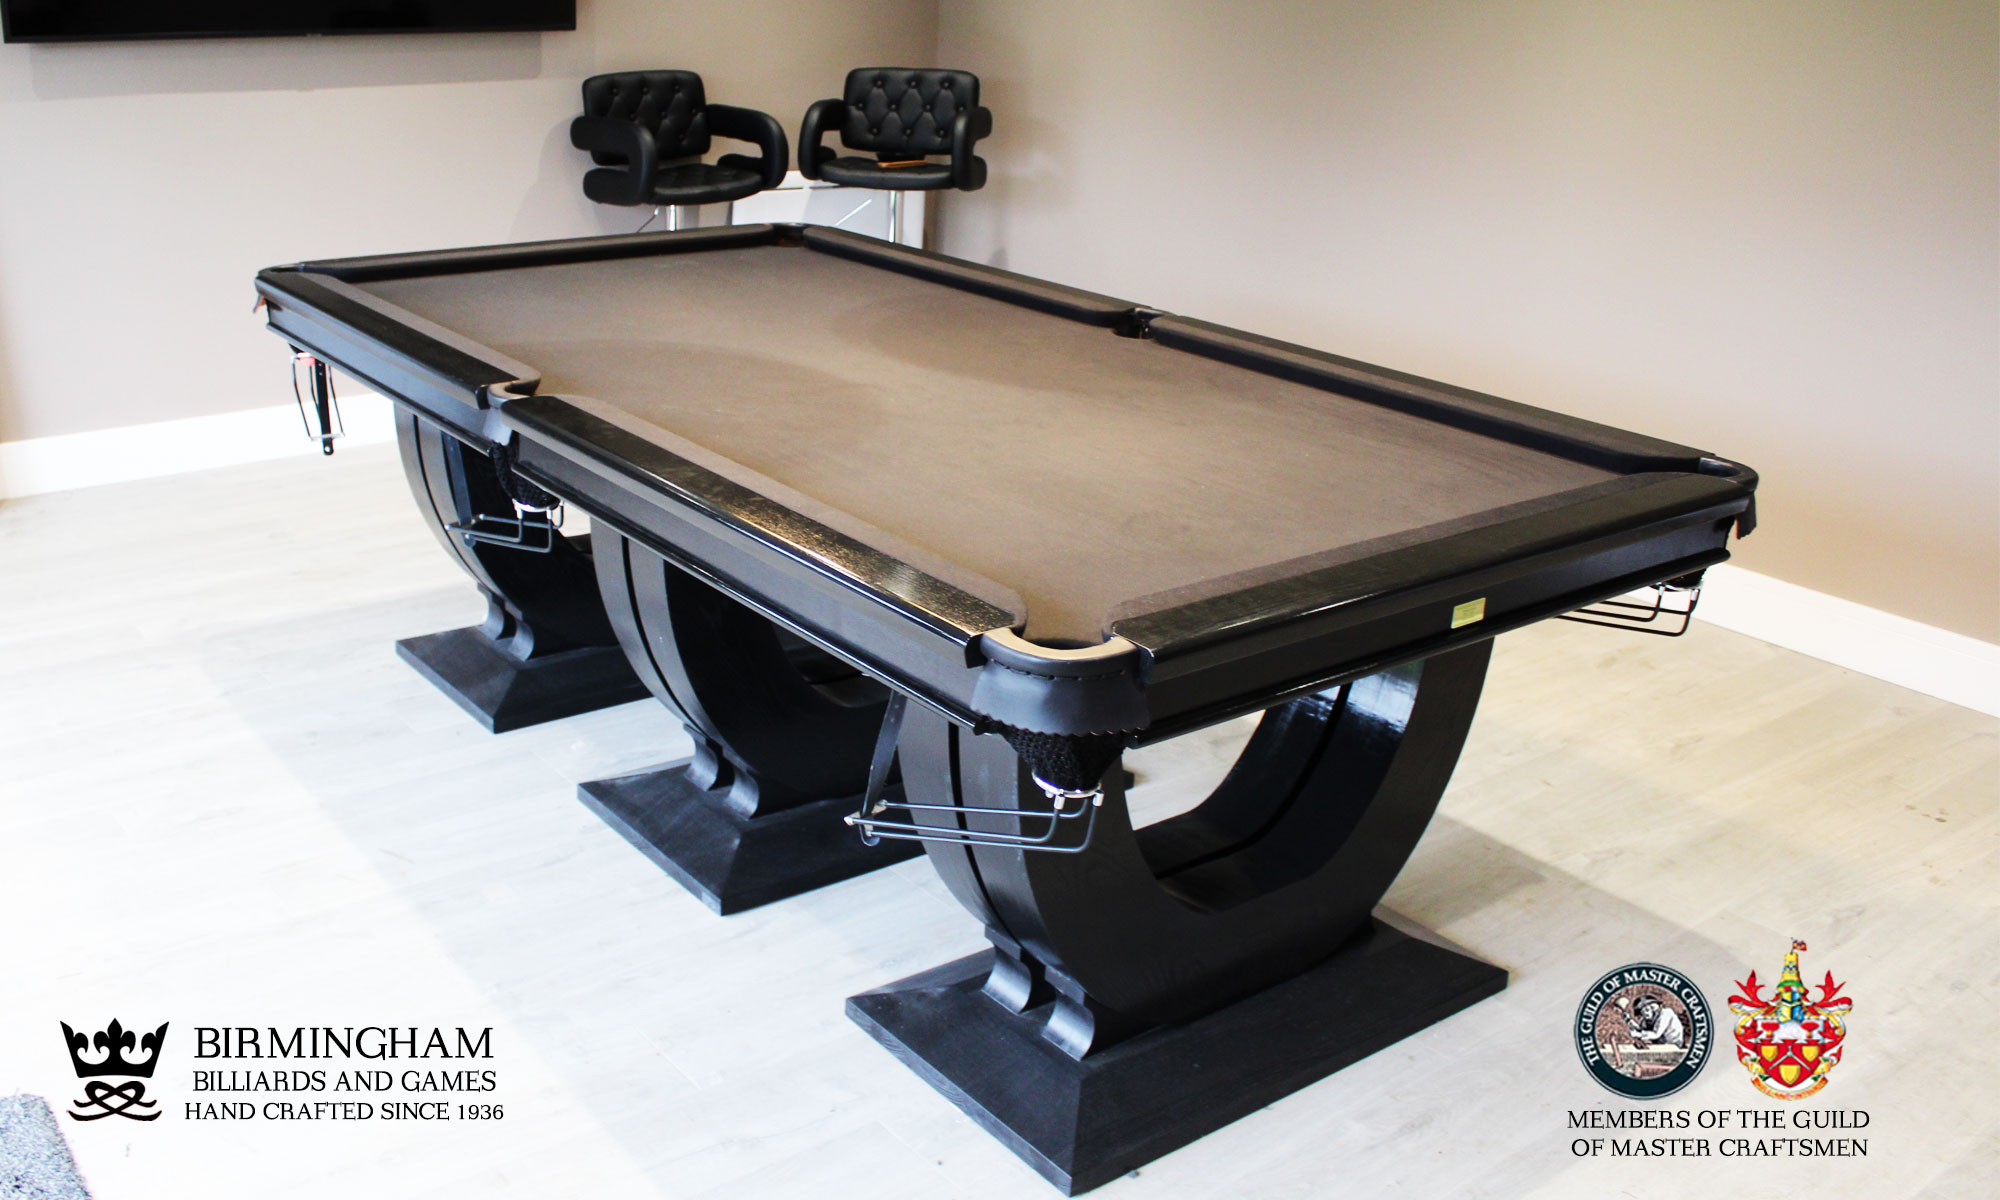 The Roma, art deco handmade pool table, black finish, black baize